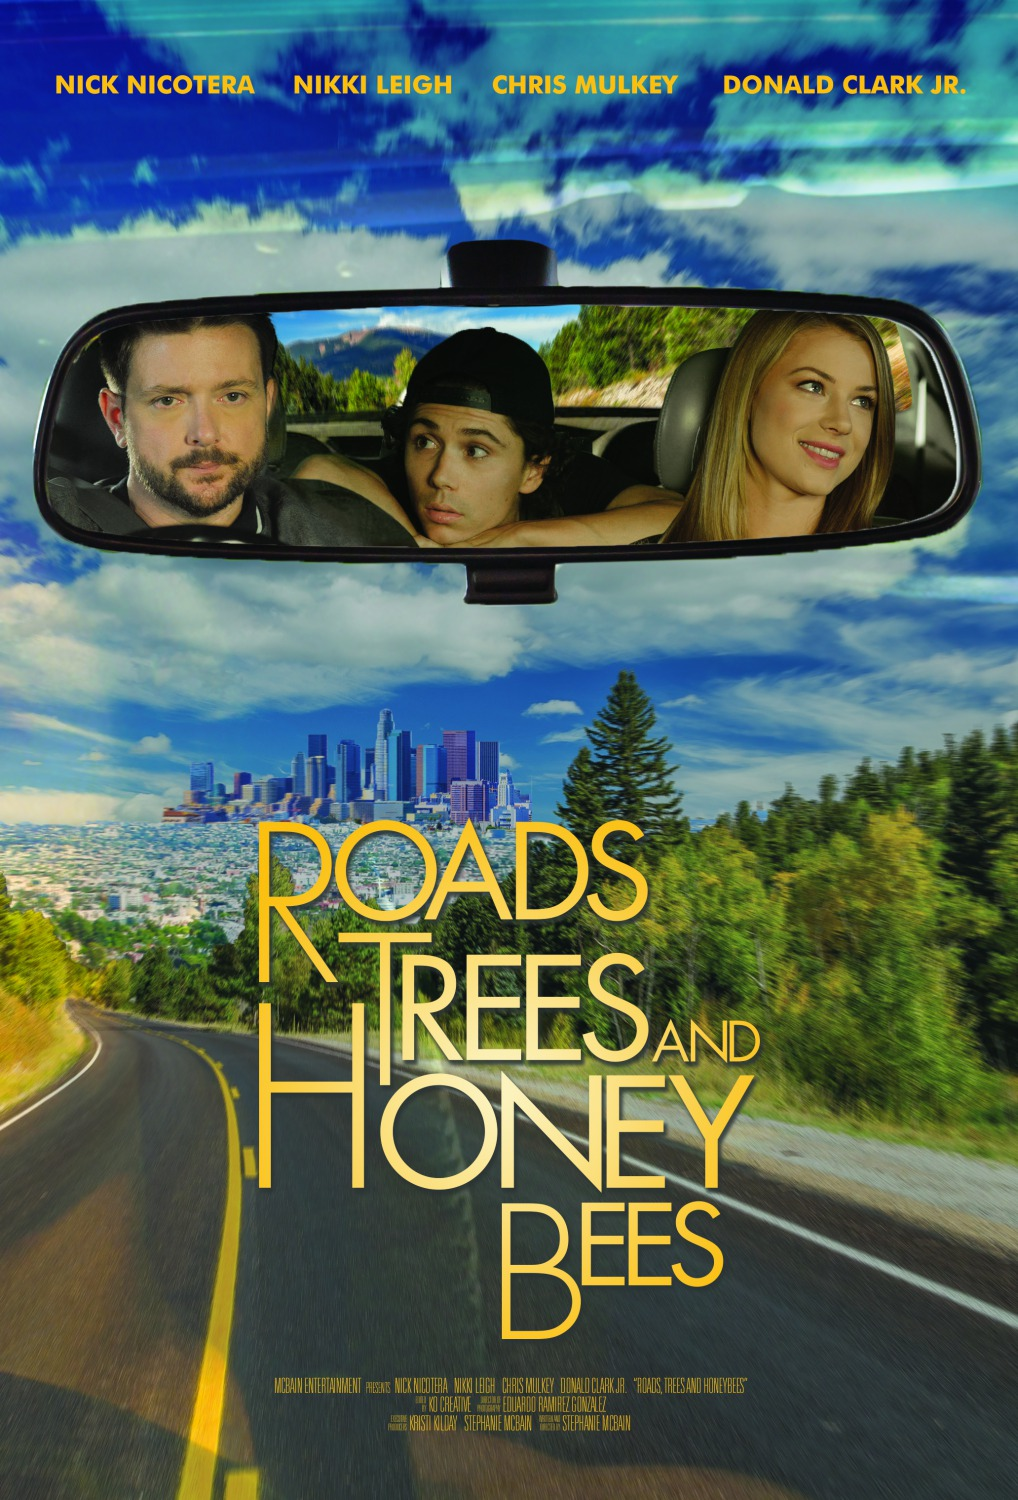 roads trees and honey bees movie poster